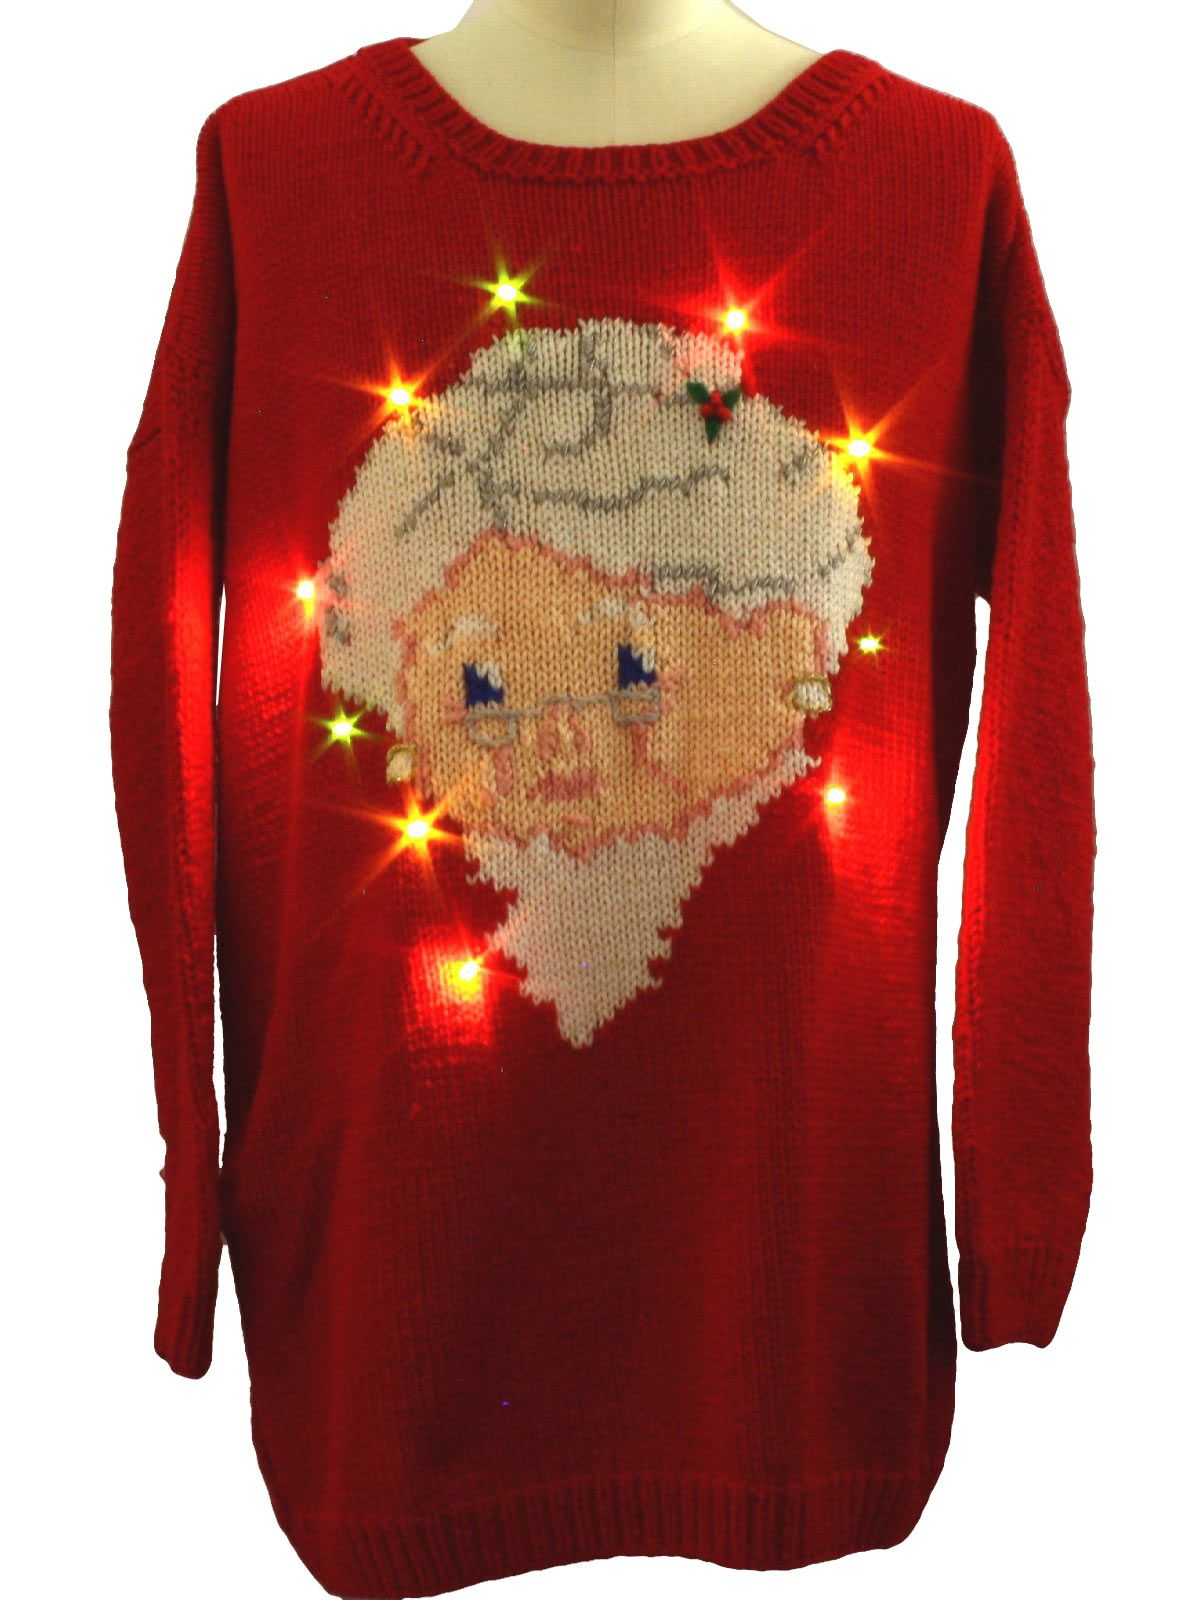 Homemade Ugly Christmas Sweaters   Style Homemade Knitted Hand...